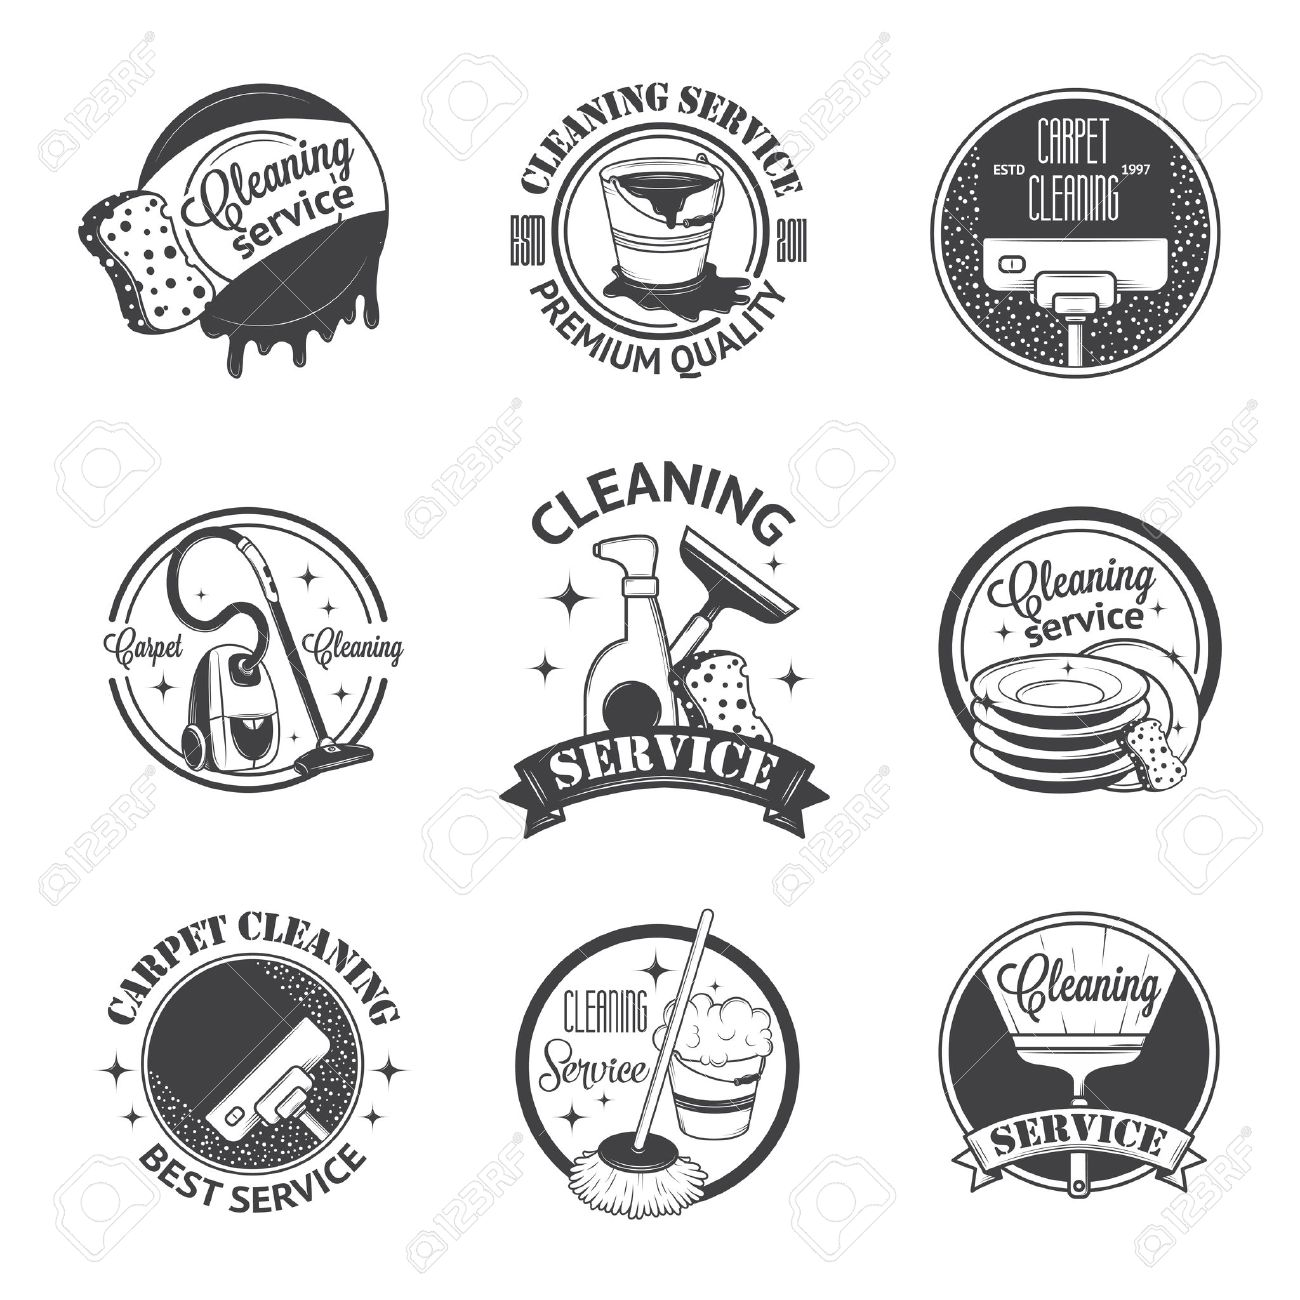 Set Of Vintage Logos, Labels And Badges Cleaning Services Royalty ...